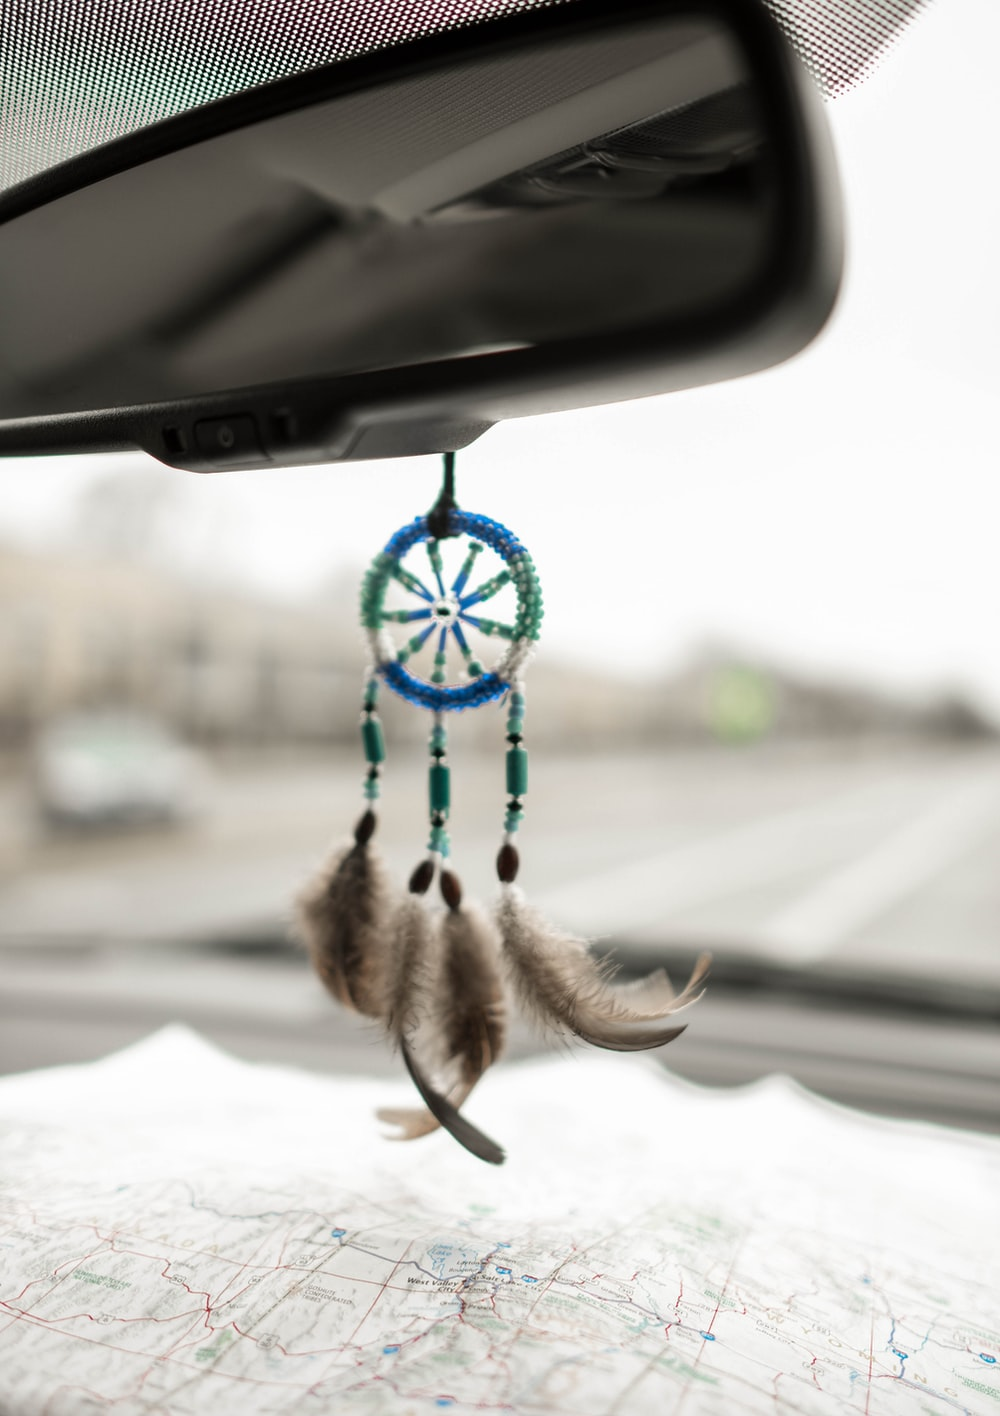 blue and green dream catcher hanging on black vehicle rear view mirror